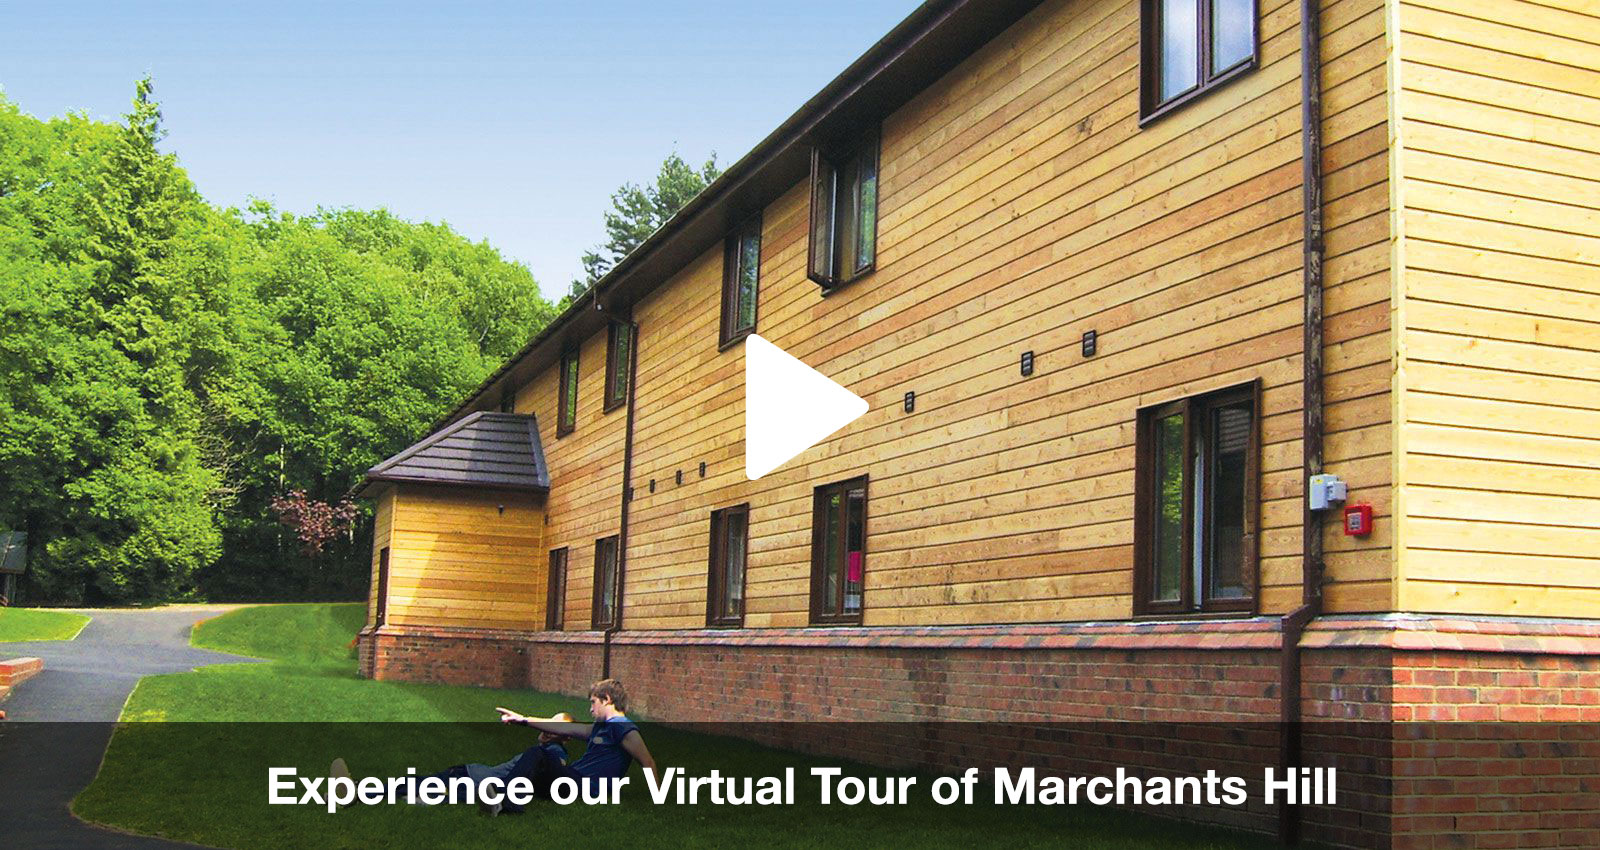 Marchants Hill for International Students